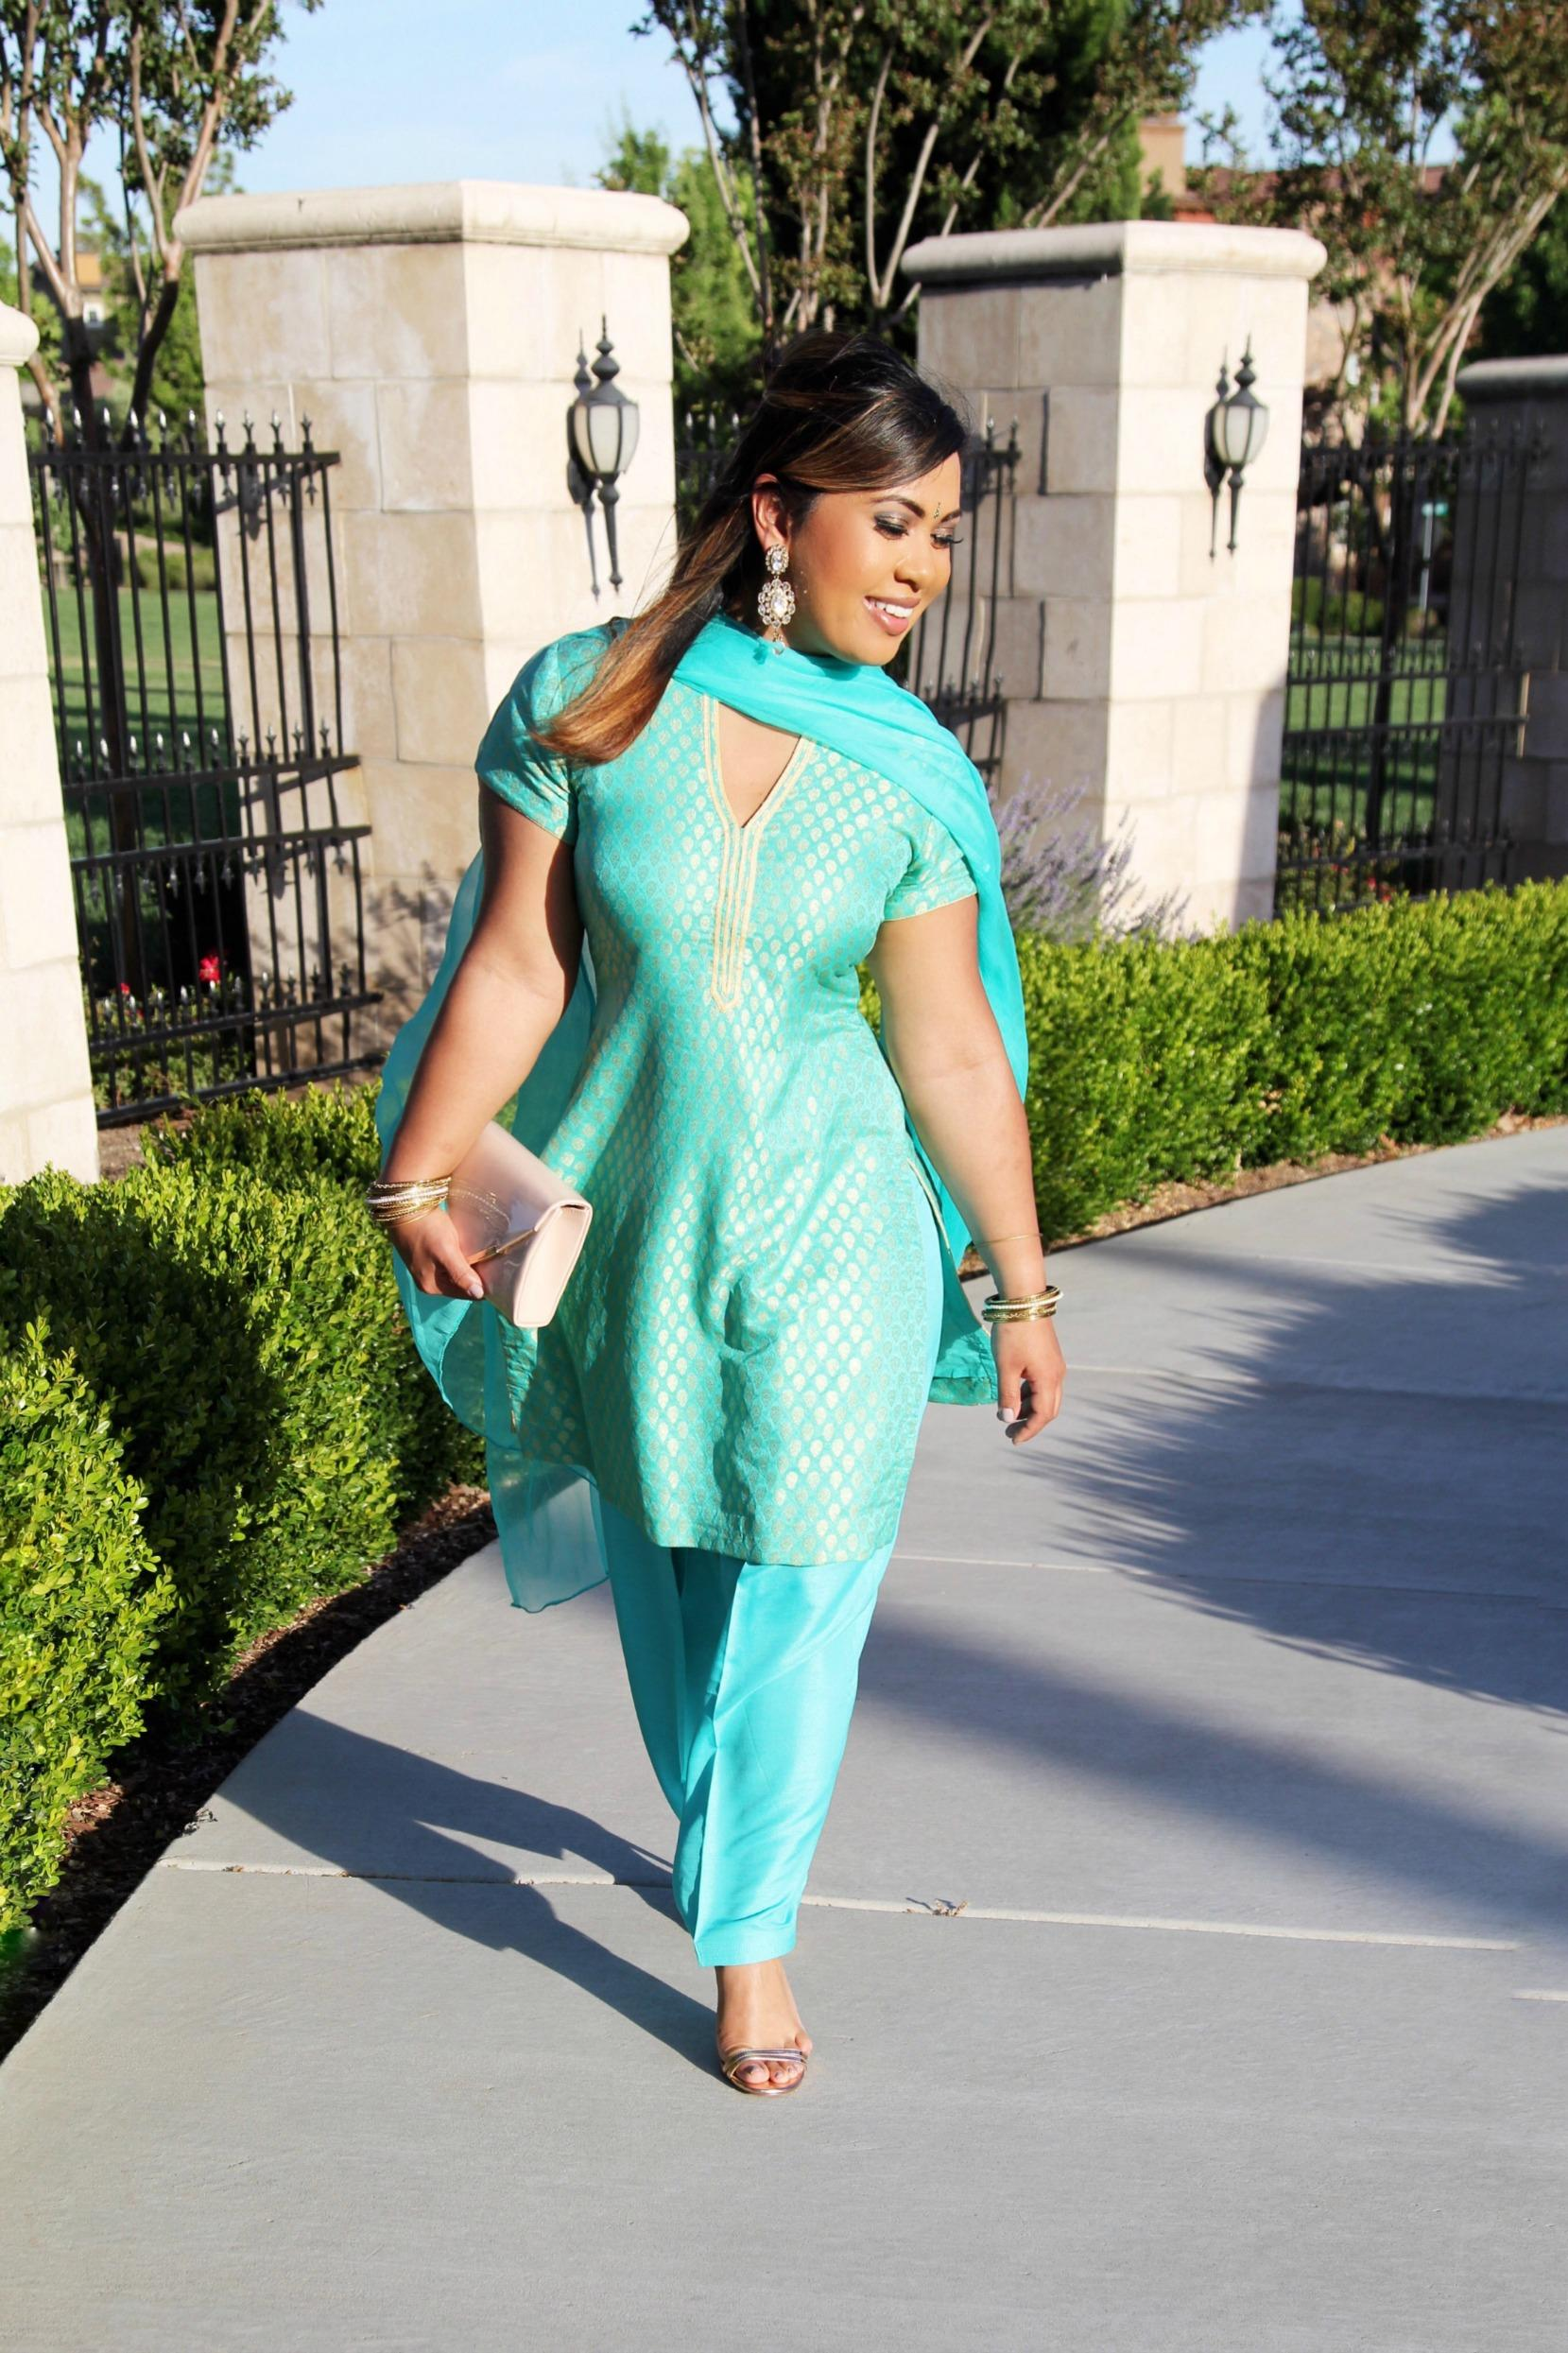 Indian Wedding Day 1 - Mehndi Night Outfit